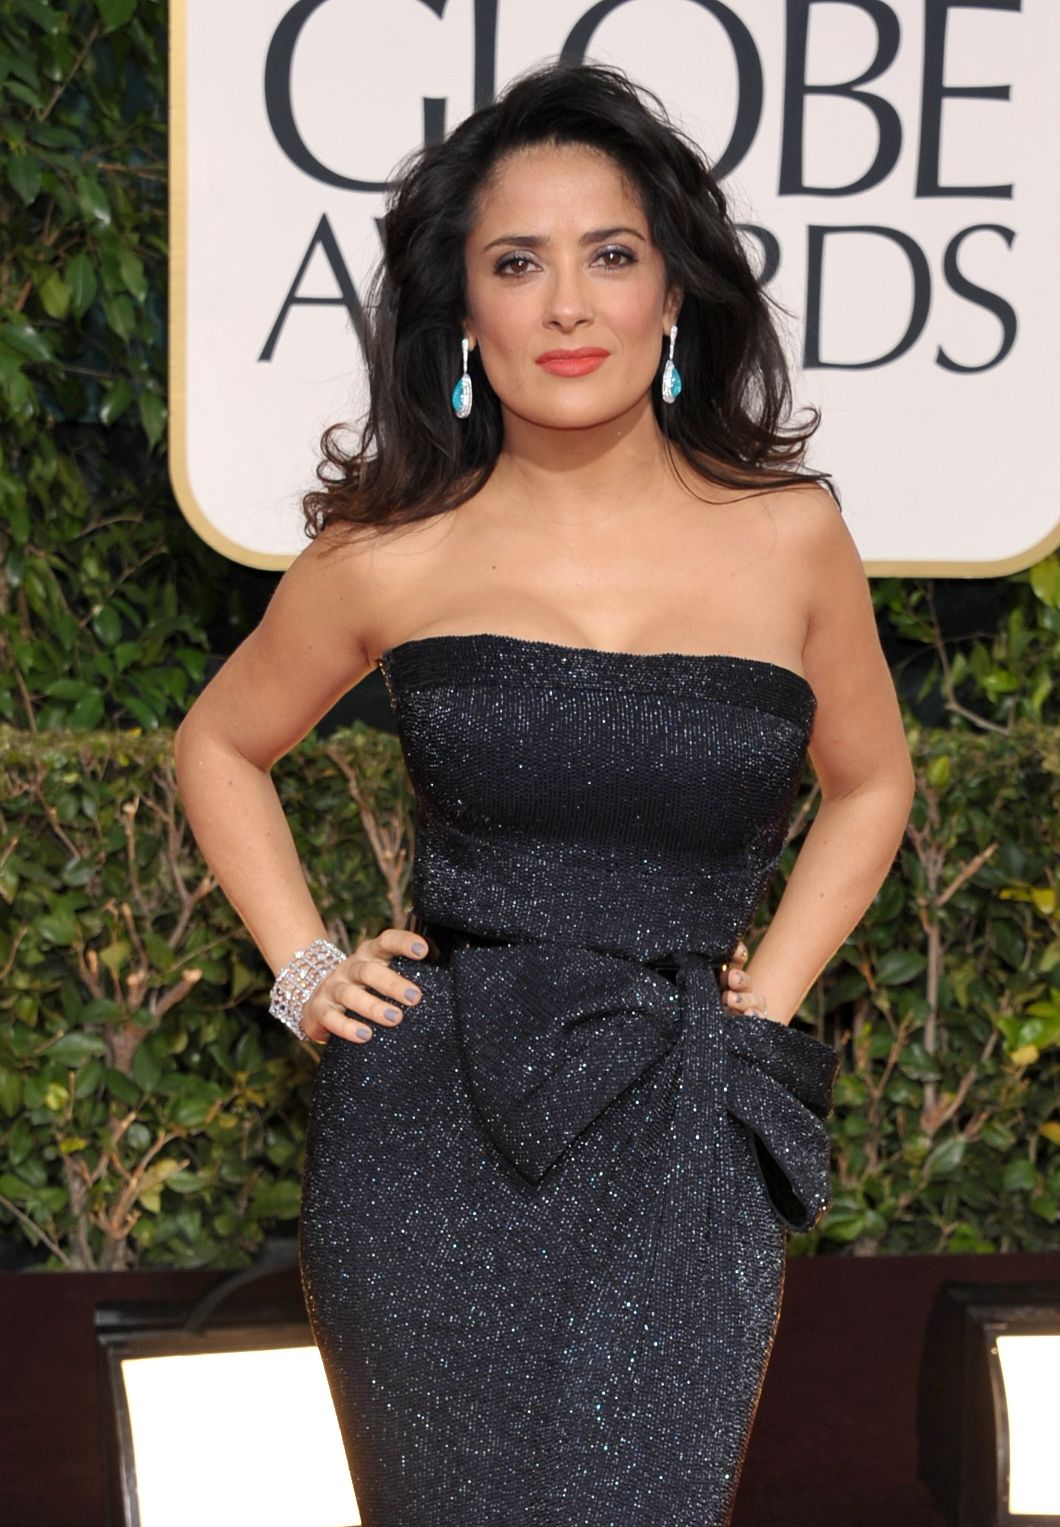 Salma Hayek at the 70th Annual Golden Globe Awards in Beverly Hills 13.1.2013_31